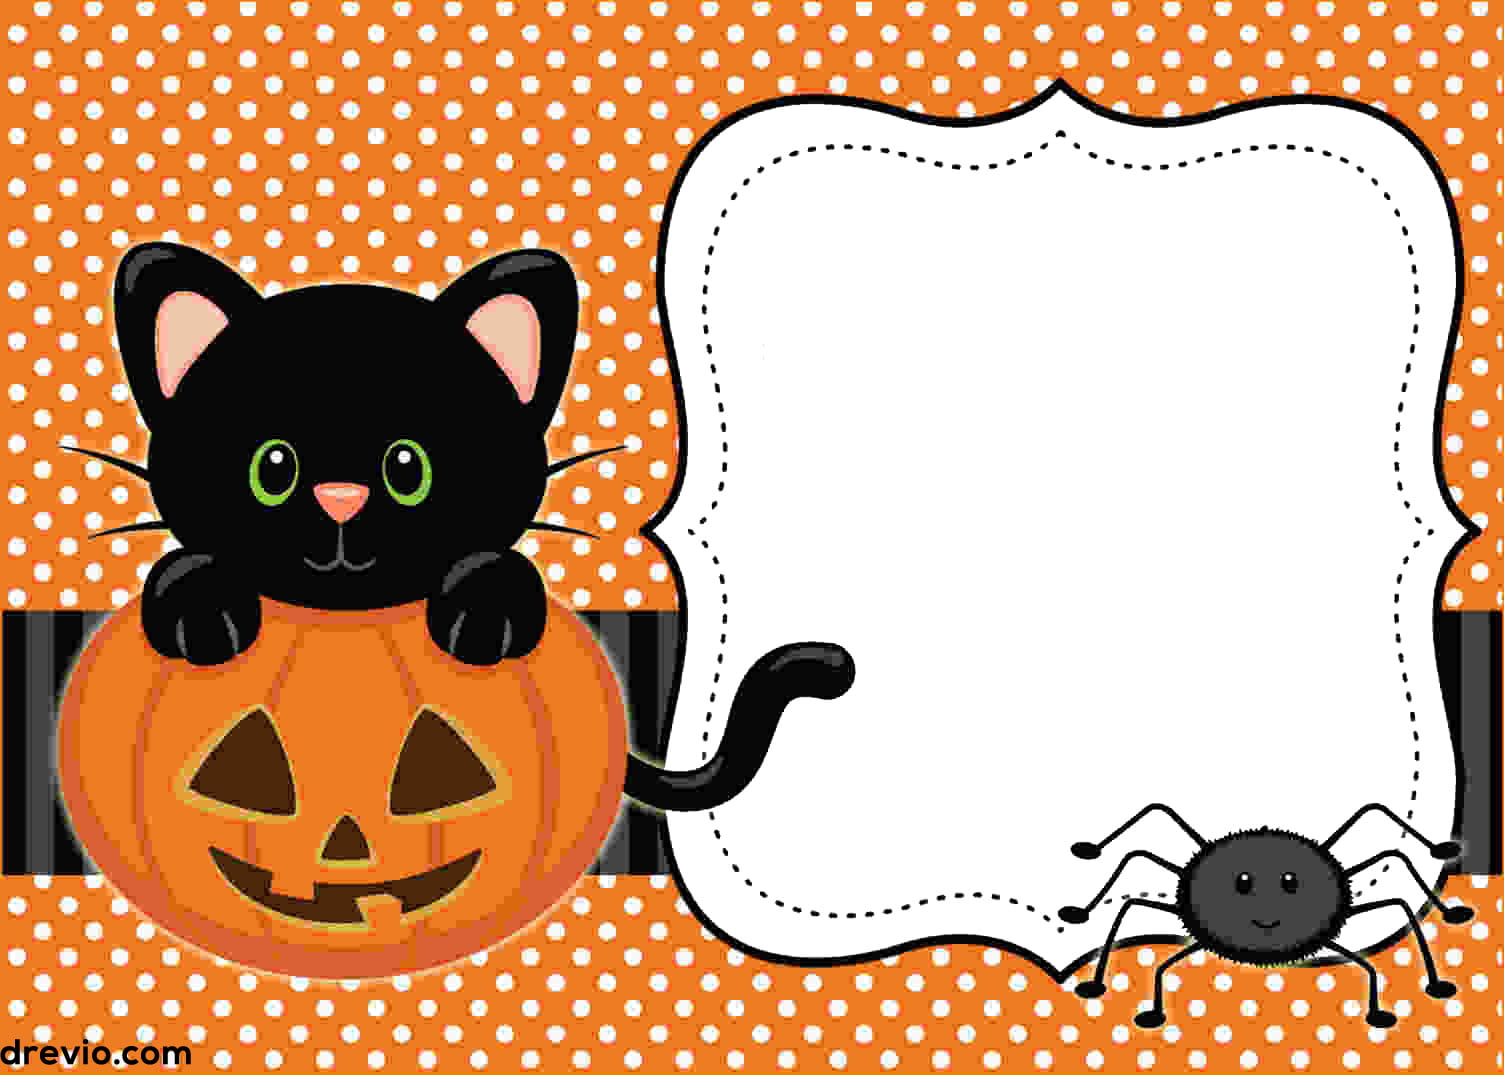 FREE Printable Halloween Invitations Templates | Drevio ...